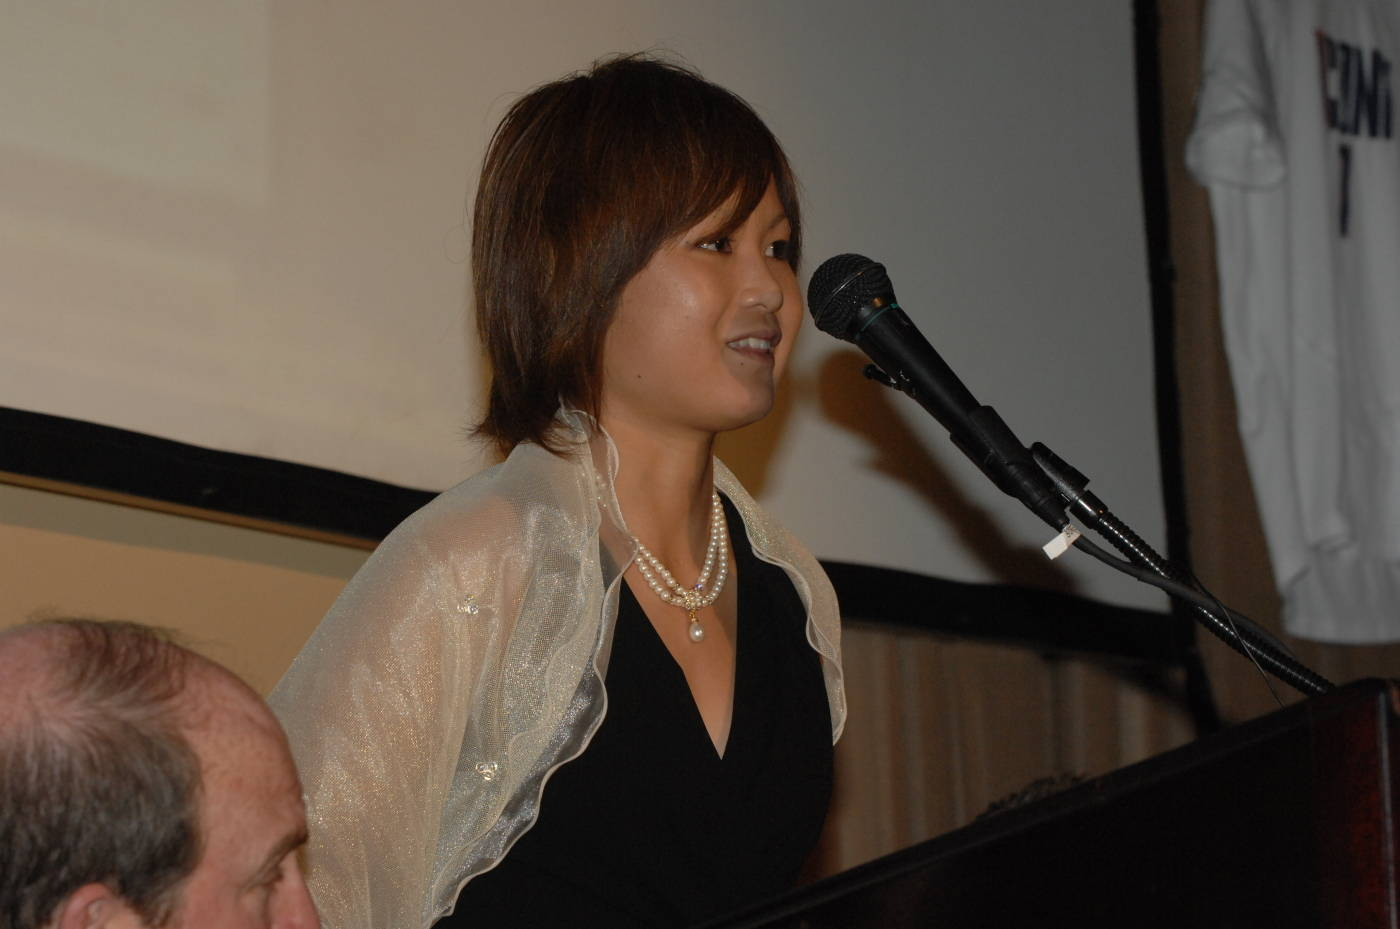 Mami during the press conference at the Missouri Athletic Club.